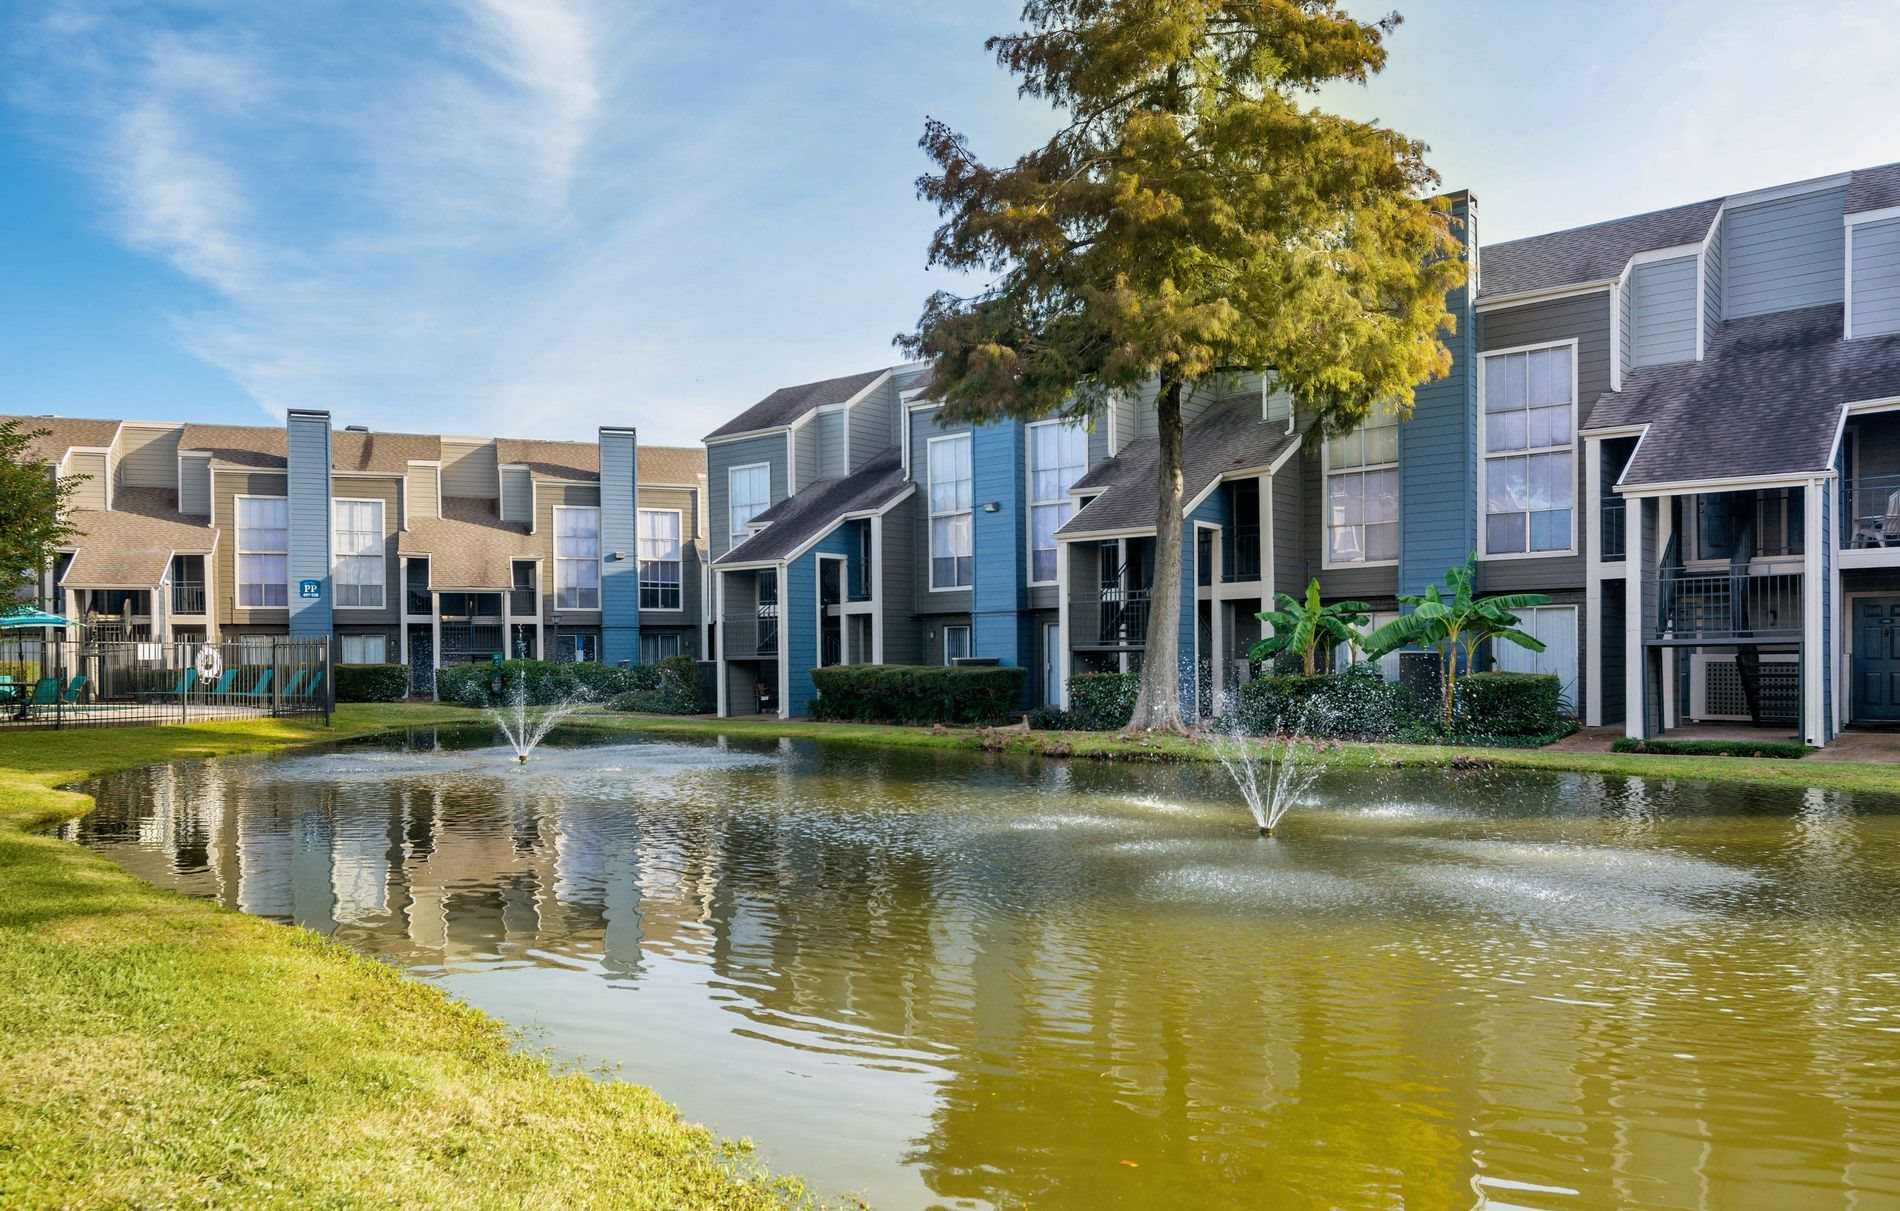 Lake View at Park at Woodlake Apartments in Houston, Texas, TX